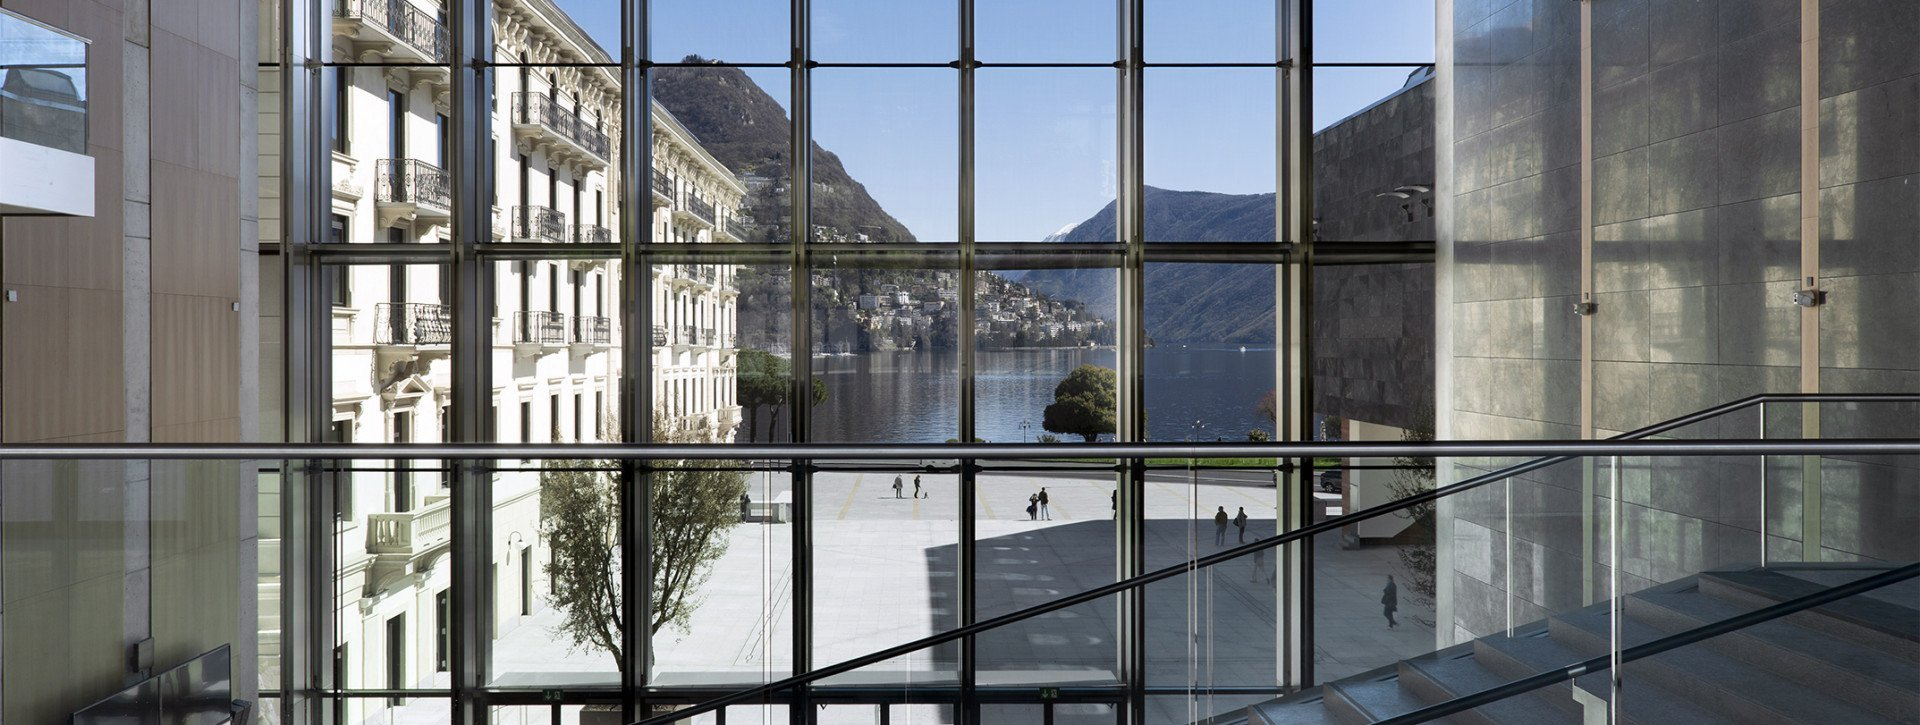 The Hall of the Lugano Arte e Cultura museum